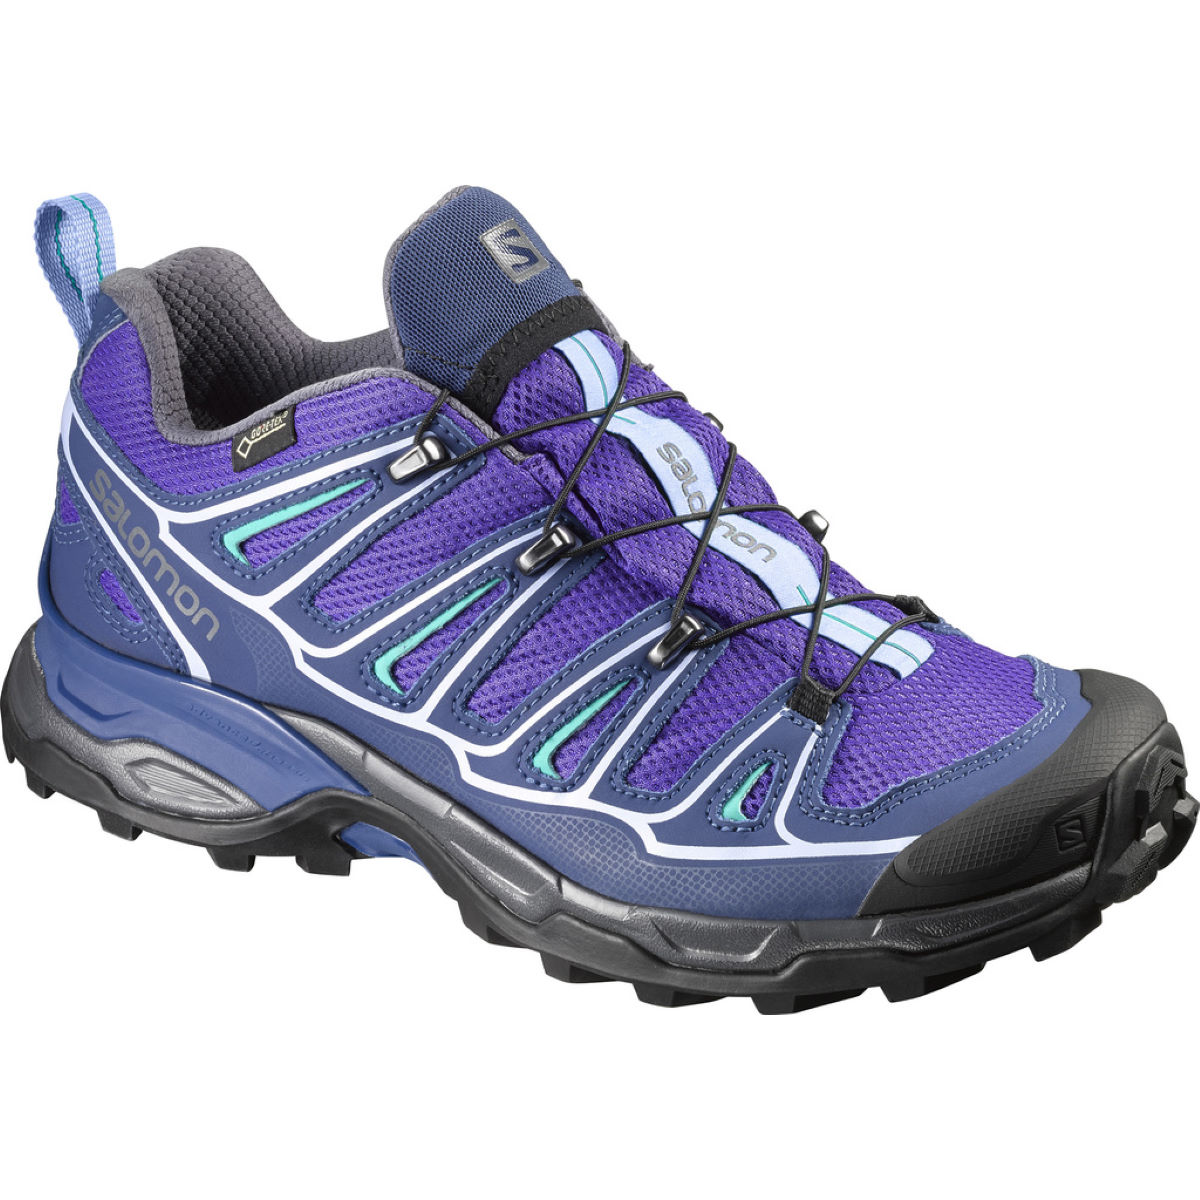 Salomon Women's X Ultra 2 GTX Shoes